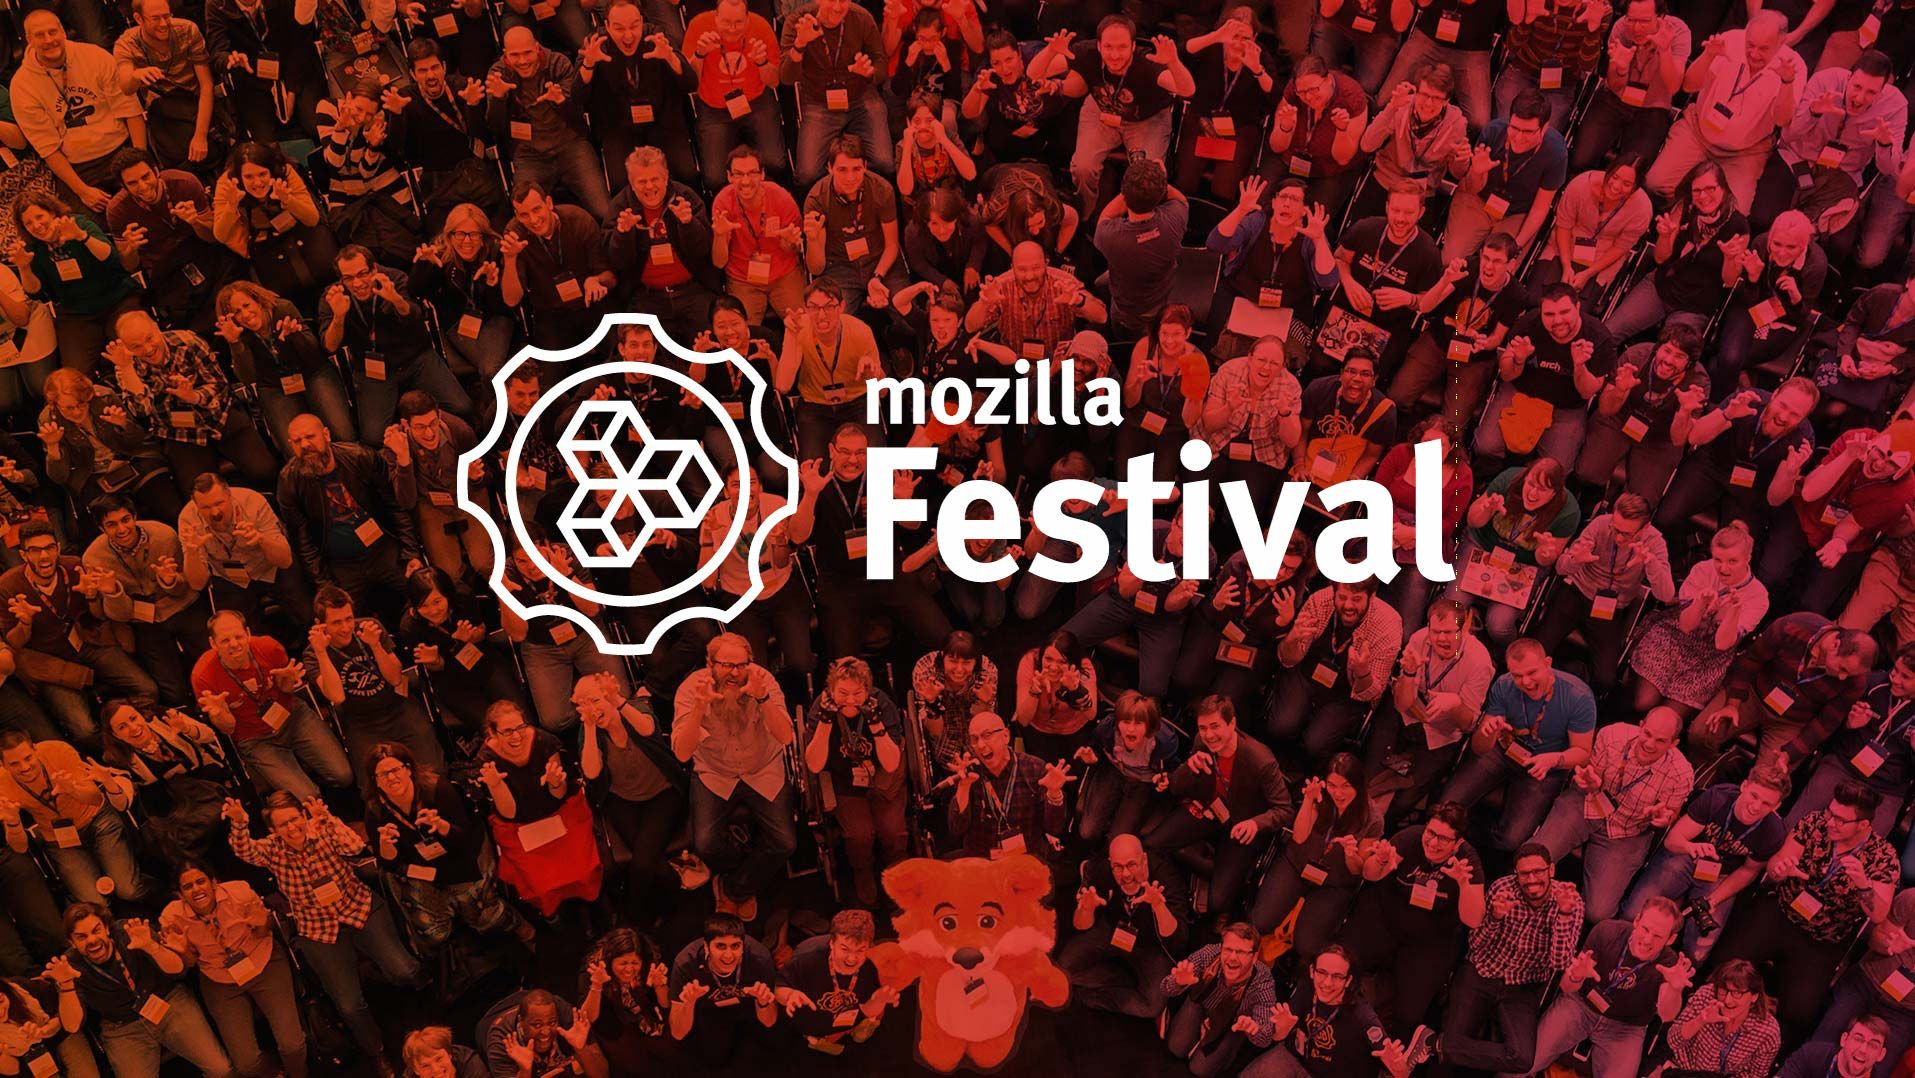 Making the most of the Mozilla Festival